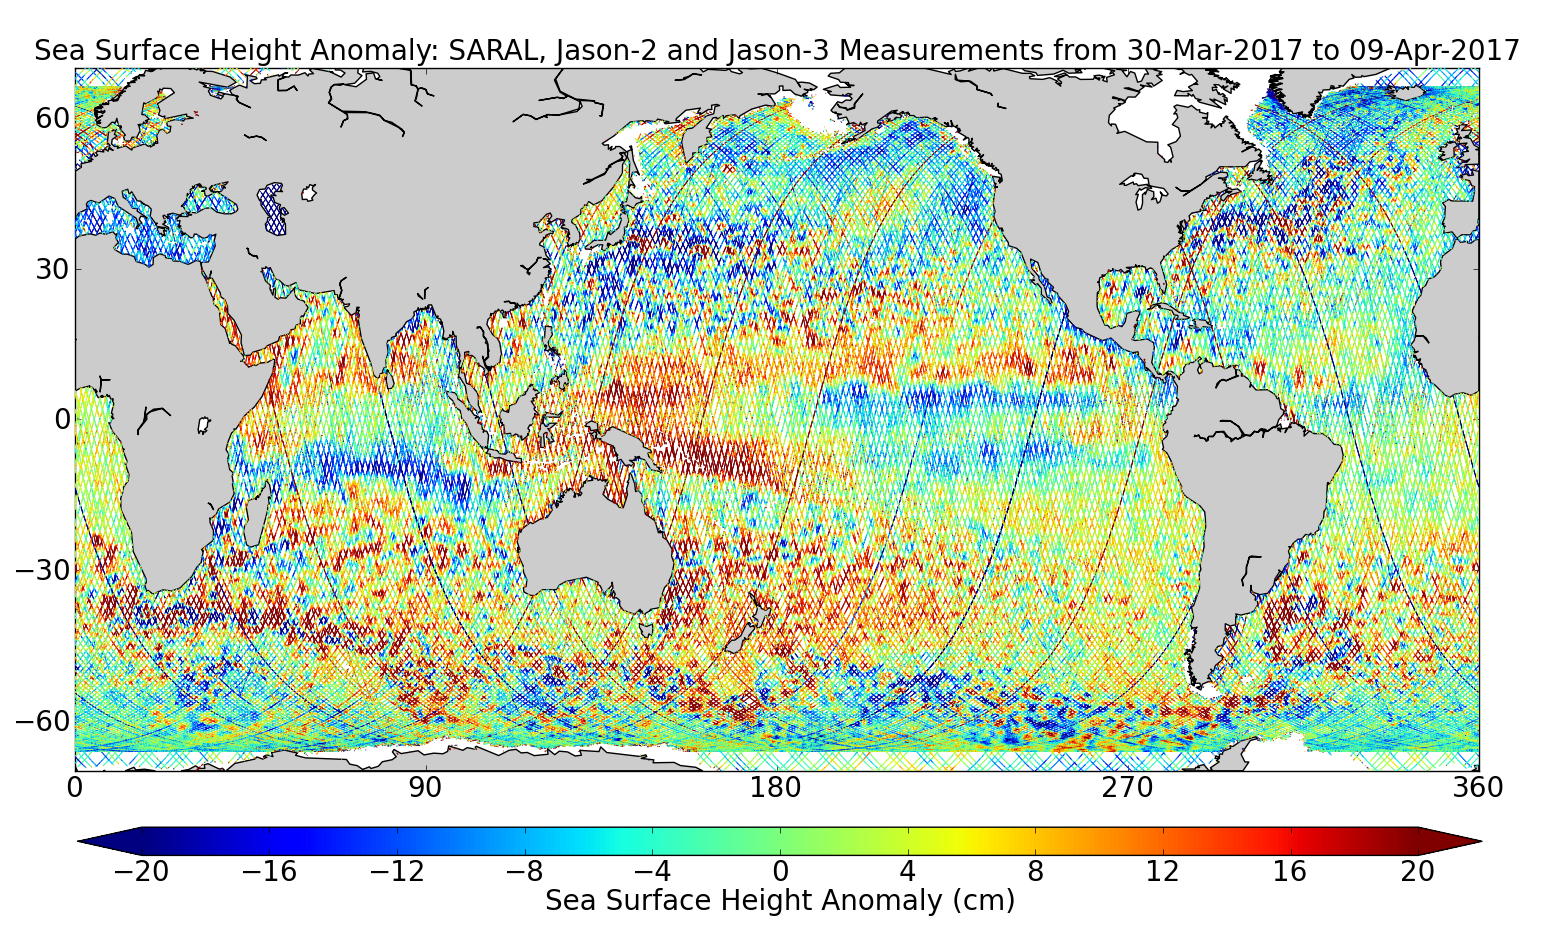 Sea Surface Height Anomaly: SARAL, Jason-2 and Jason-3 Measurements from 30-Mar-2017 to 09-Apr-2017